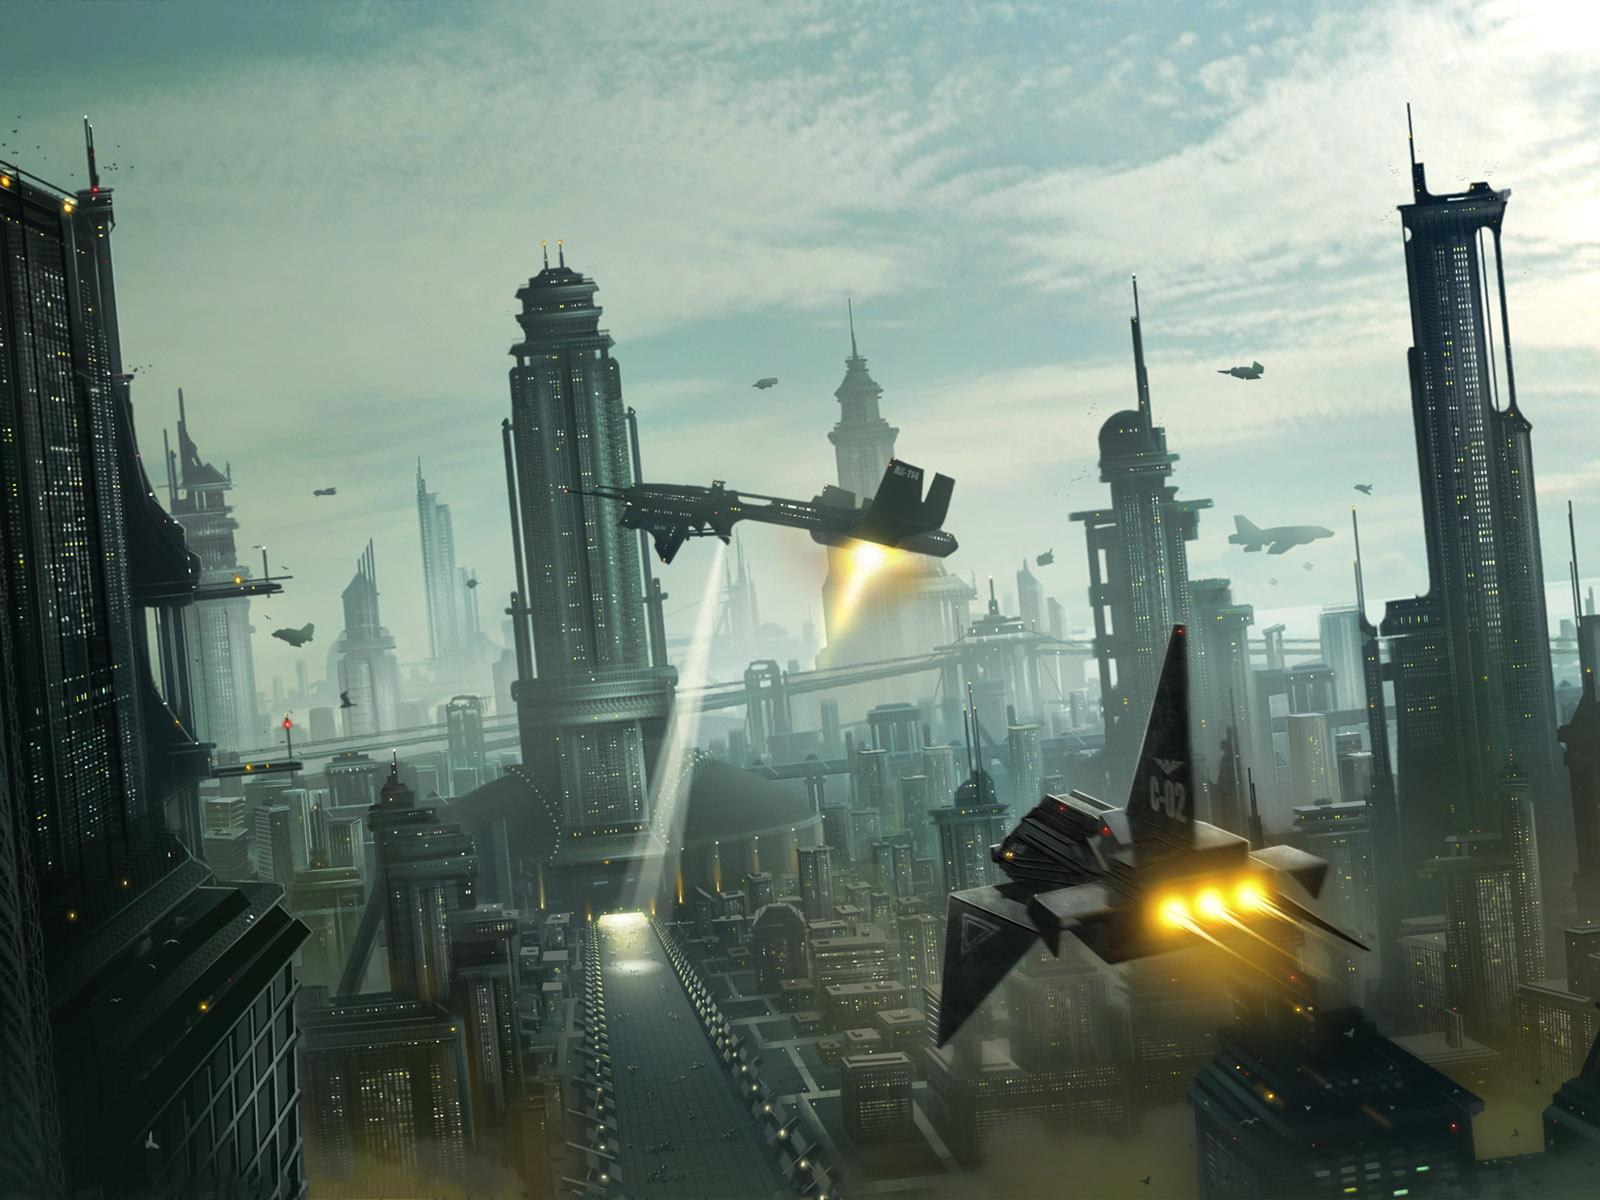 Space Ships Attack The City Of Iron Buildings